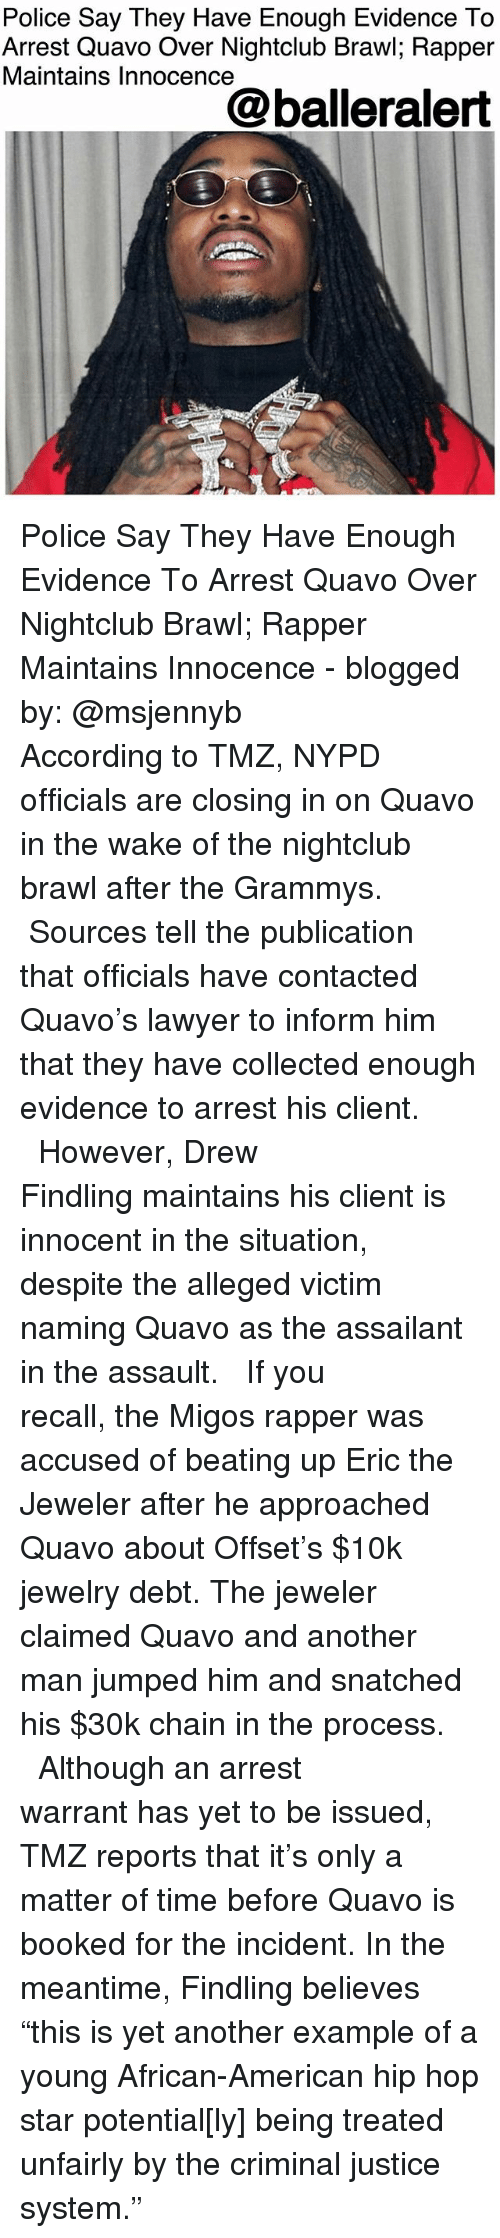 """Grammys, Lawyer, and Memes: Police Say Tney Have Enough Evidence lo  Arrest Quavo Over Nightclub Brawl; Rapper  Maintains Innocence  @balleralert Police Say They Have Enough Evidence To Arrest Quavo Over Nightclub Brawl; Rapper Maintains Innocence - blogged by: @msjennyb ⠀⠀⠀⠀⠀⠀⠀ ⠀⠀⠀⠀⠀⠀⠀ According to TMZ, NYPD officials are closing in on Quavo in the wake of the nightclub brawl after the Grammys. ⠀⠀⠀⠀⠀⠀⠀ ⠀⠀⠀⠀⠀⠀⠀ Sources tell the publication that officials have contacted Quavo's lawyer to inform him that they have collected enough evidence to arrest his client. ⠀⠀⠀⠀⠀⠀⠀ ⠀⠀⠀⠀⠀⠀⠀ However, Drew Findling maintains his client is innocent in the situation, despite the alleged victim naming Quavo as the assailant in the assault. ⠀⠀⠀⠀⠀⠀⠀ ⠀⠀⠀⠀⠀⠀⠀ If you recall, the Migos rapper was accused of beating up Eric the Jeweler after he approached Quavo about Offset's $10k jewelry debt. The jeweler claimed Quavo and another man jumped him and snatched his $30k chain in the process. ⠀⠀⠀⠀⠀⠀⠀ ⠀⠀⠀⠀⠀⠀⠀ Although an arrest warrant has yet to be issued, TMZ reports that it's only a matter of time before Quavo is booked for the incident. In the meantime, Findling believes """"this is yet another example of a young African-American hip hop star potential[ly] being treated unfairly by the criminal justice system."""""""